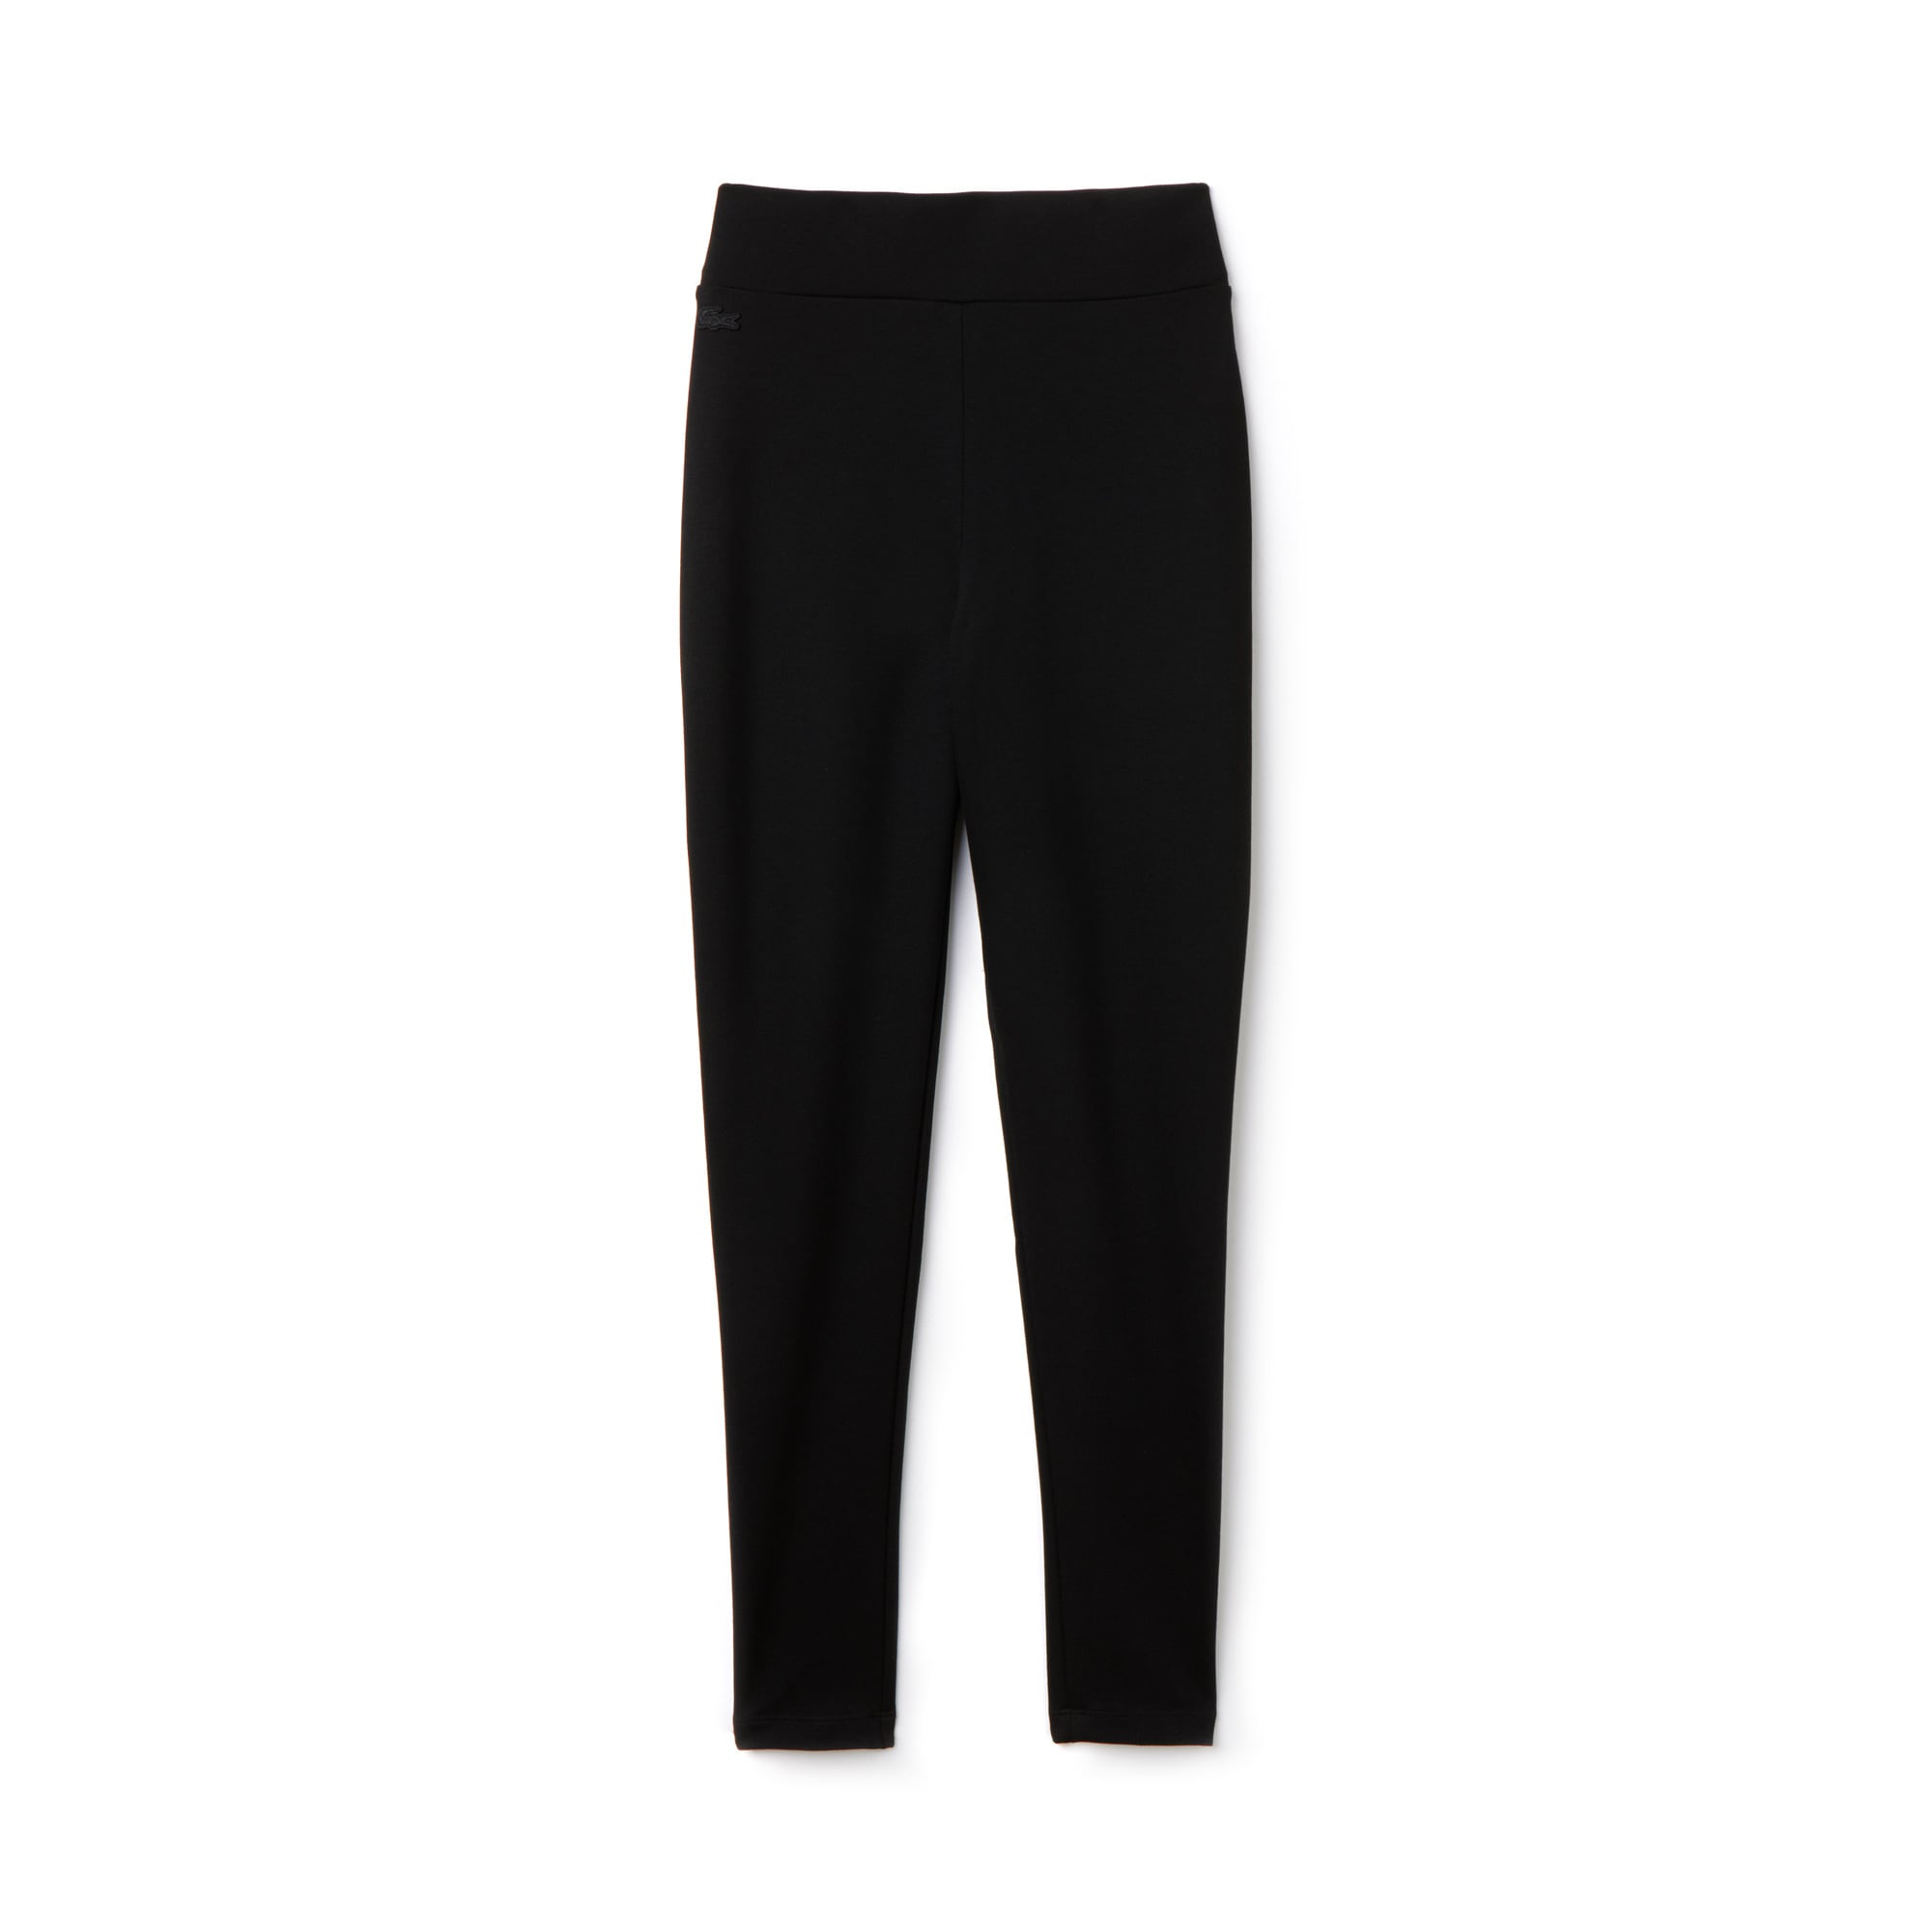 라코스테 바지 Lacoste Womens Milano Knit Leggings,BLACK